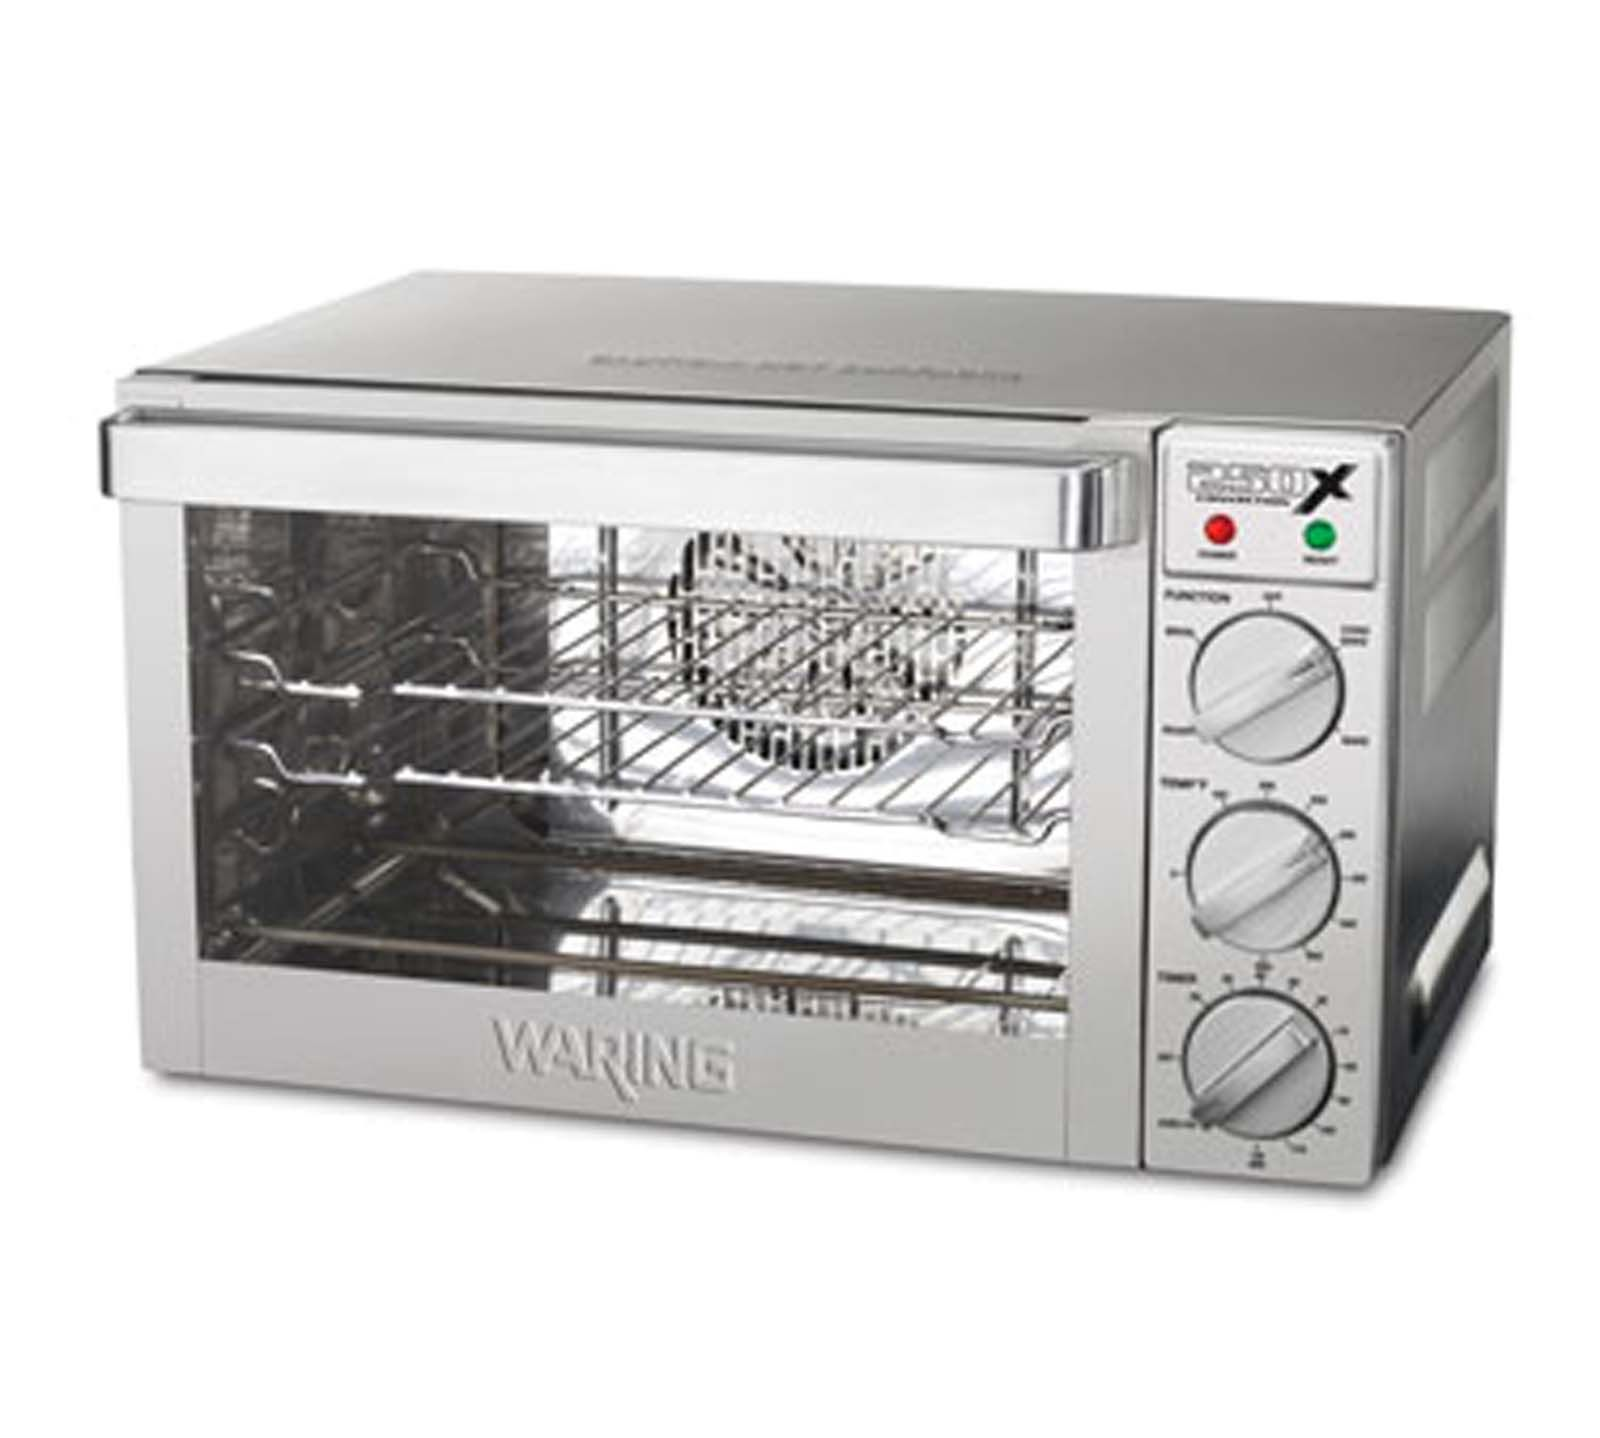 Waring Wco250x Commercial Convection Oven W 2 Chrome Plated